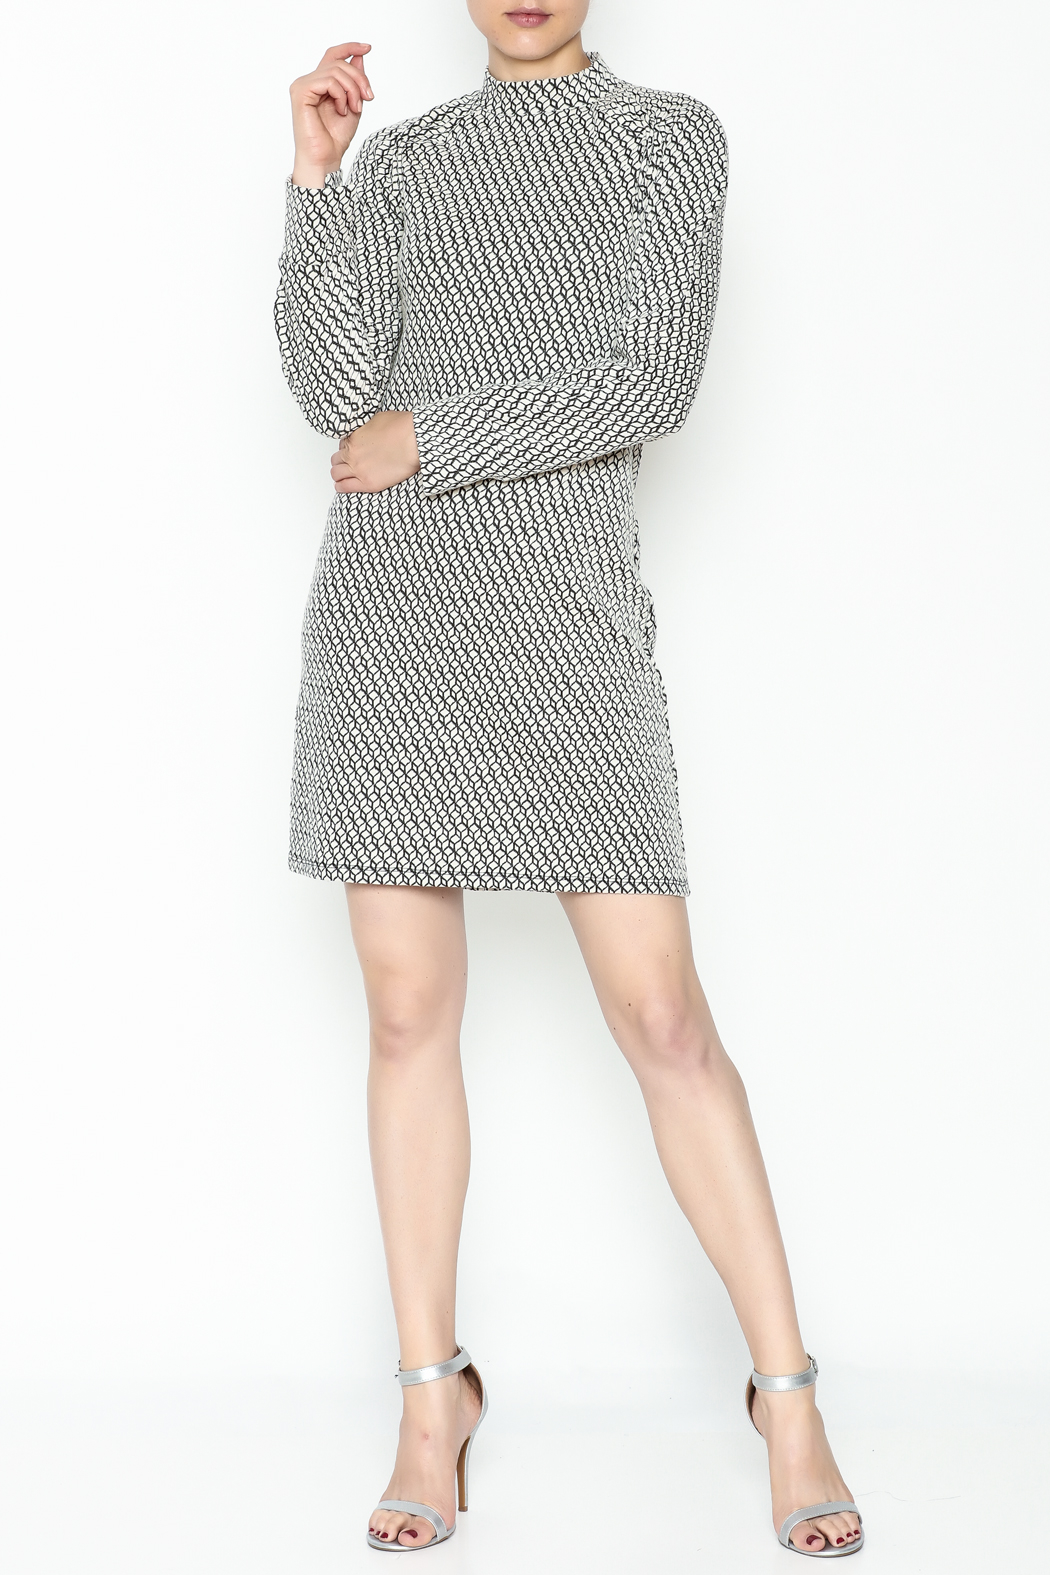 House of Wallace Josephine Dress - Side Cropped Image